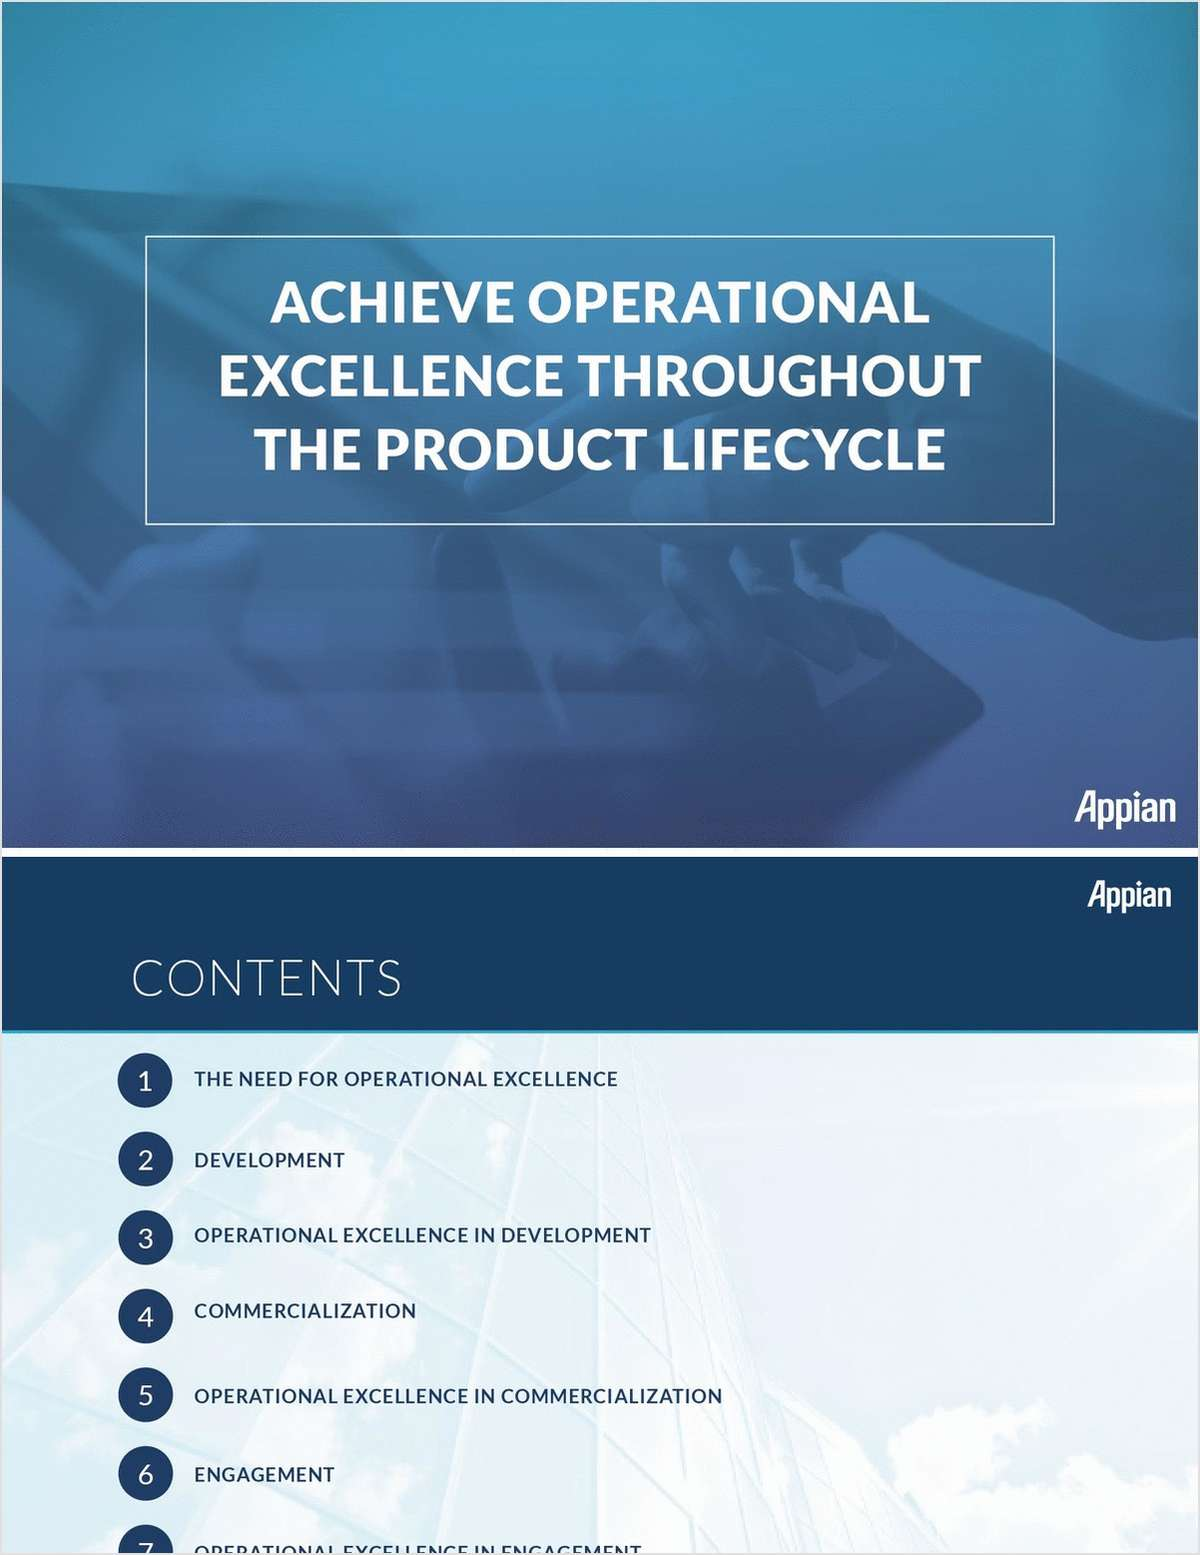 Achieve Operational Excellence Throughout the Product Lifecycle